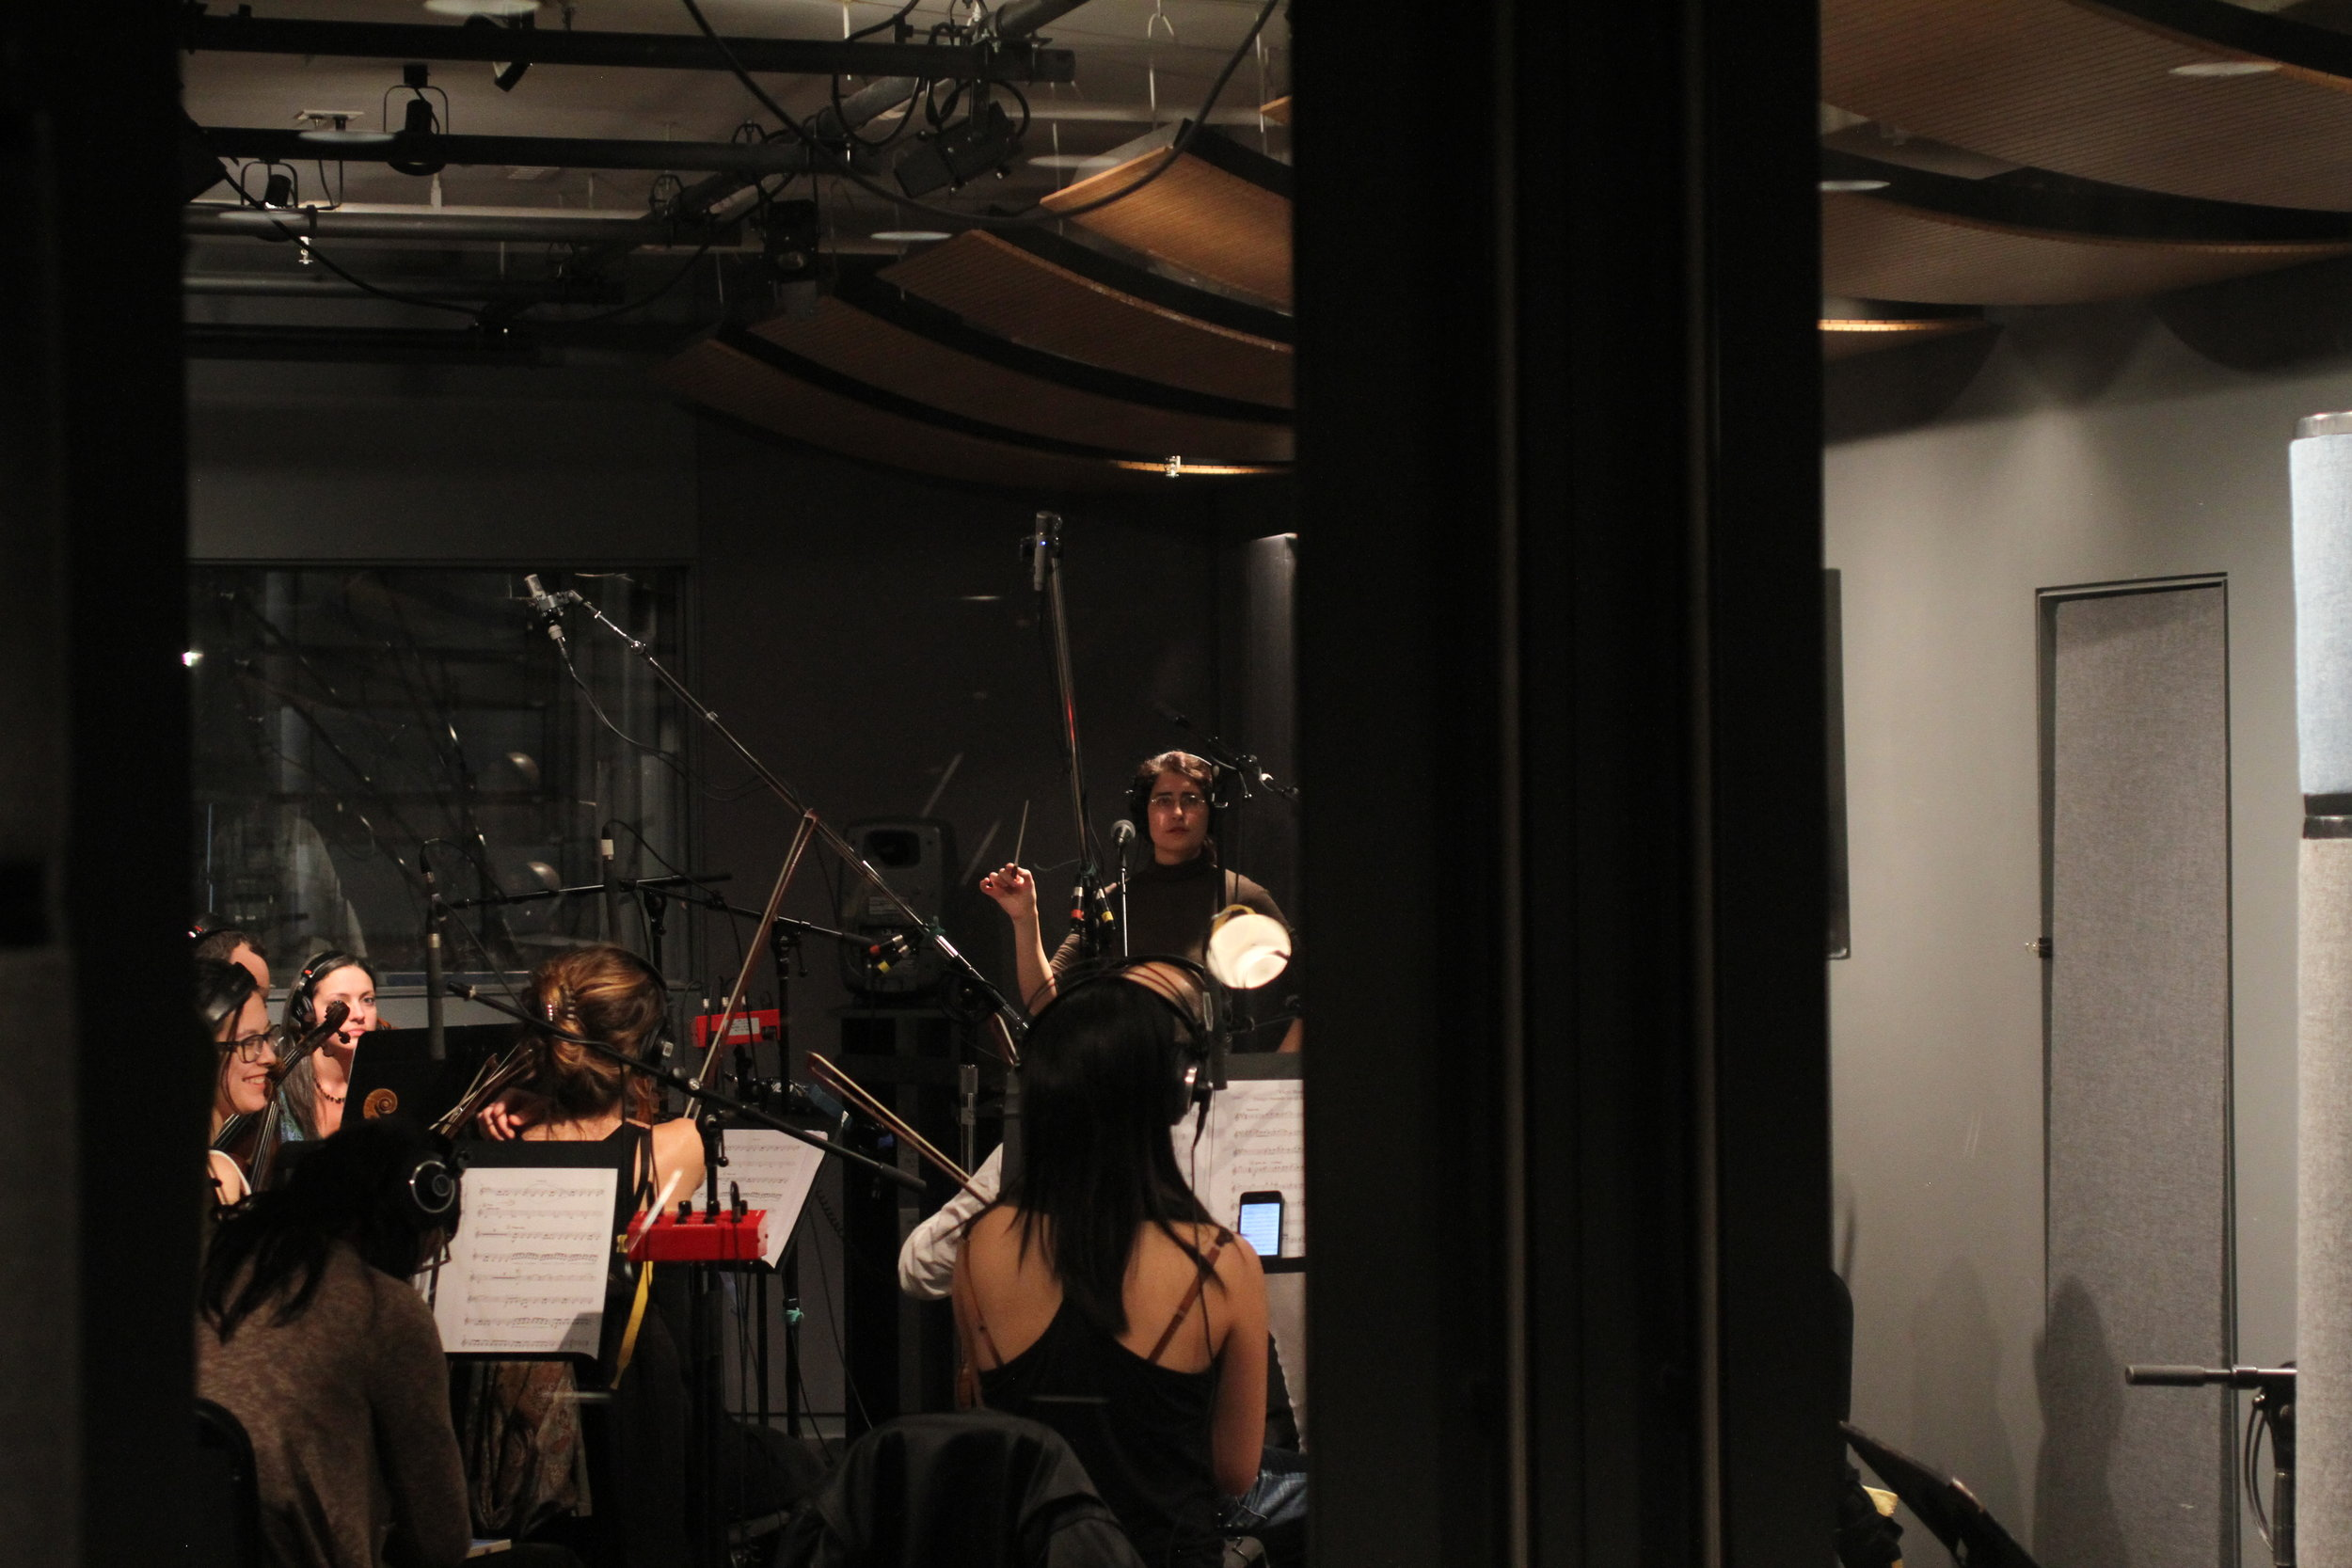 Recording sessions at the James L. Dolan Studio at NYU